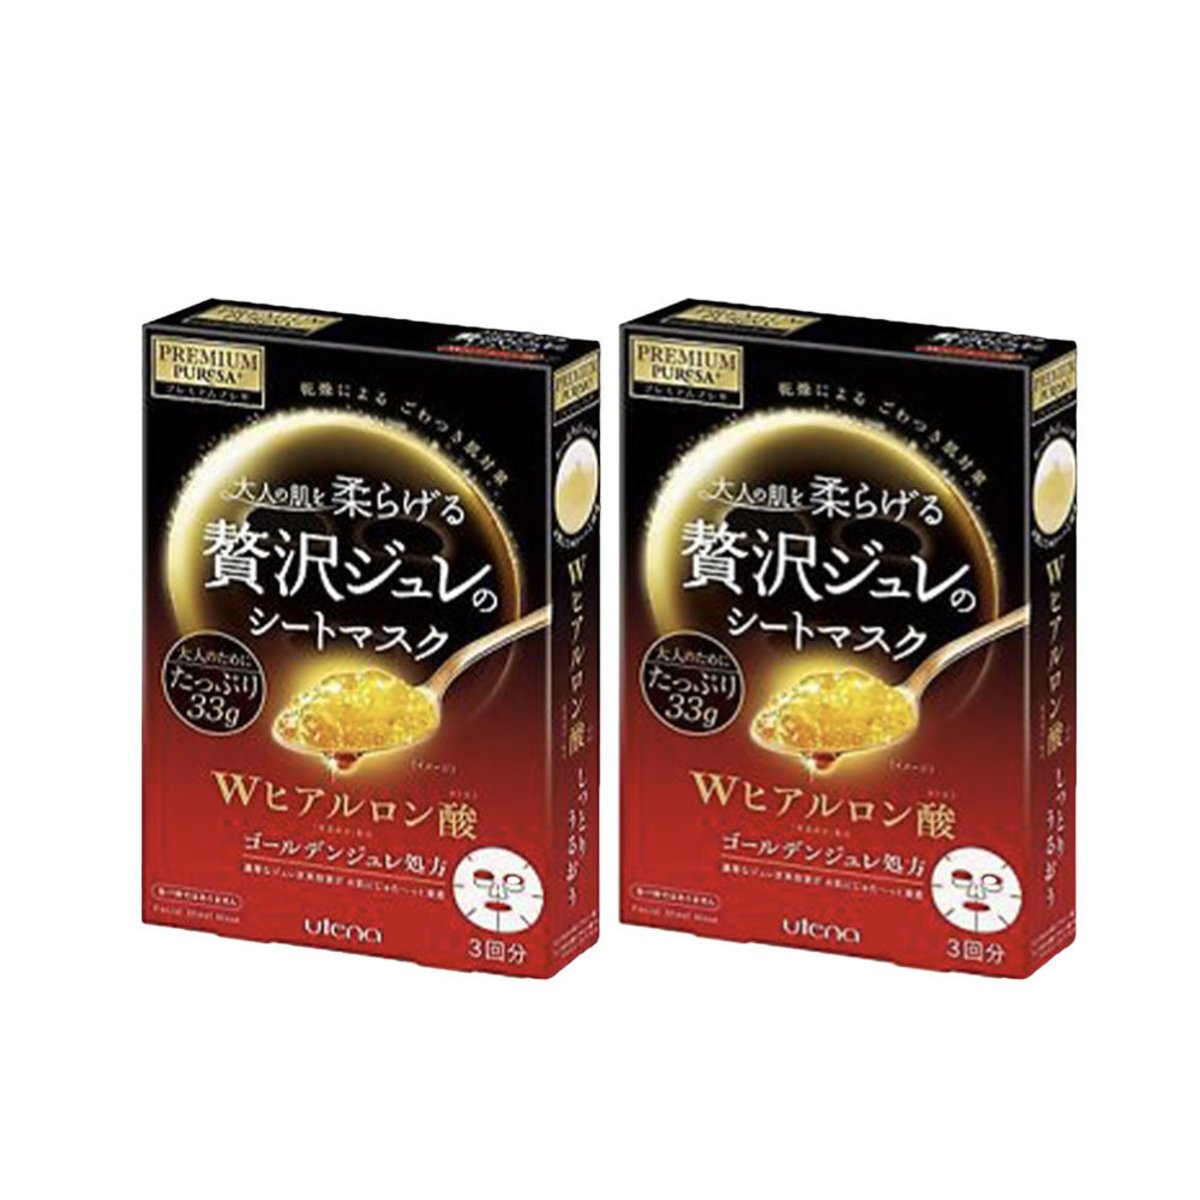 Premium Puresa Golden Jelly Mask Hyaluronic Acid Tripack x2[Parallel Import](Clearance item)